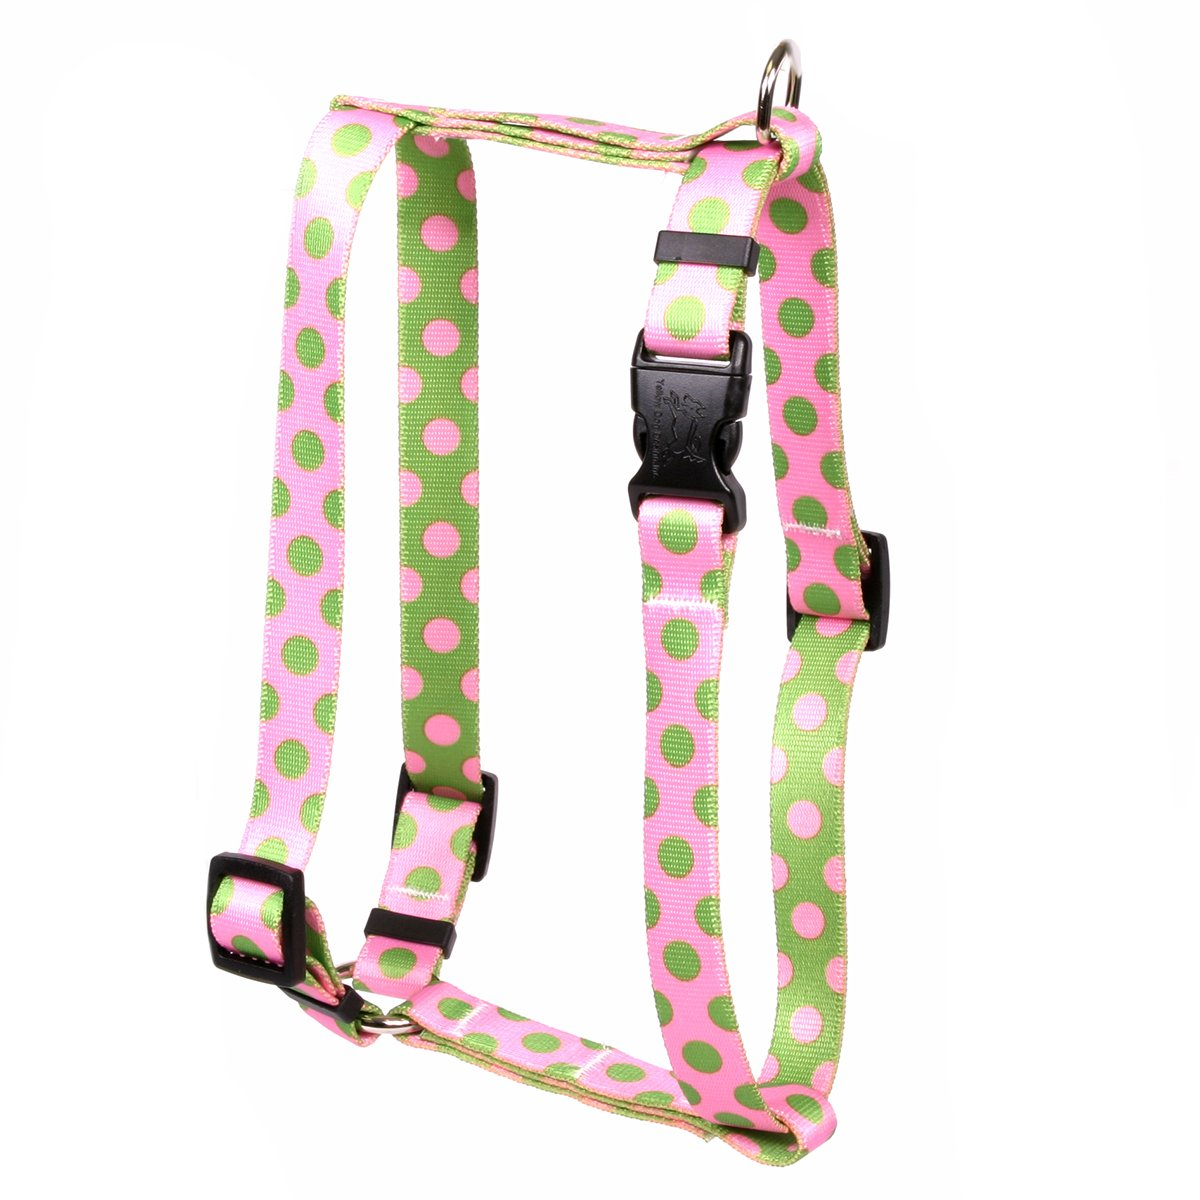 Yellow Dog Design Pink Green Polka Dot Roman Style H Dog Harness, Large-1'' Wide fits Chest of 20 to 28''